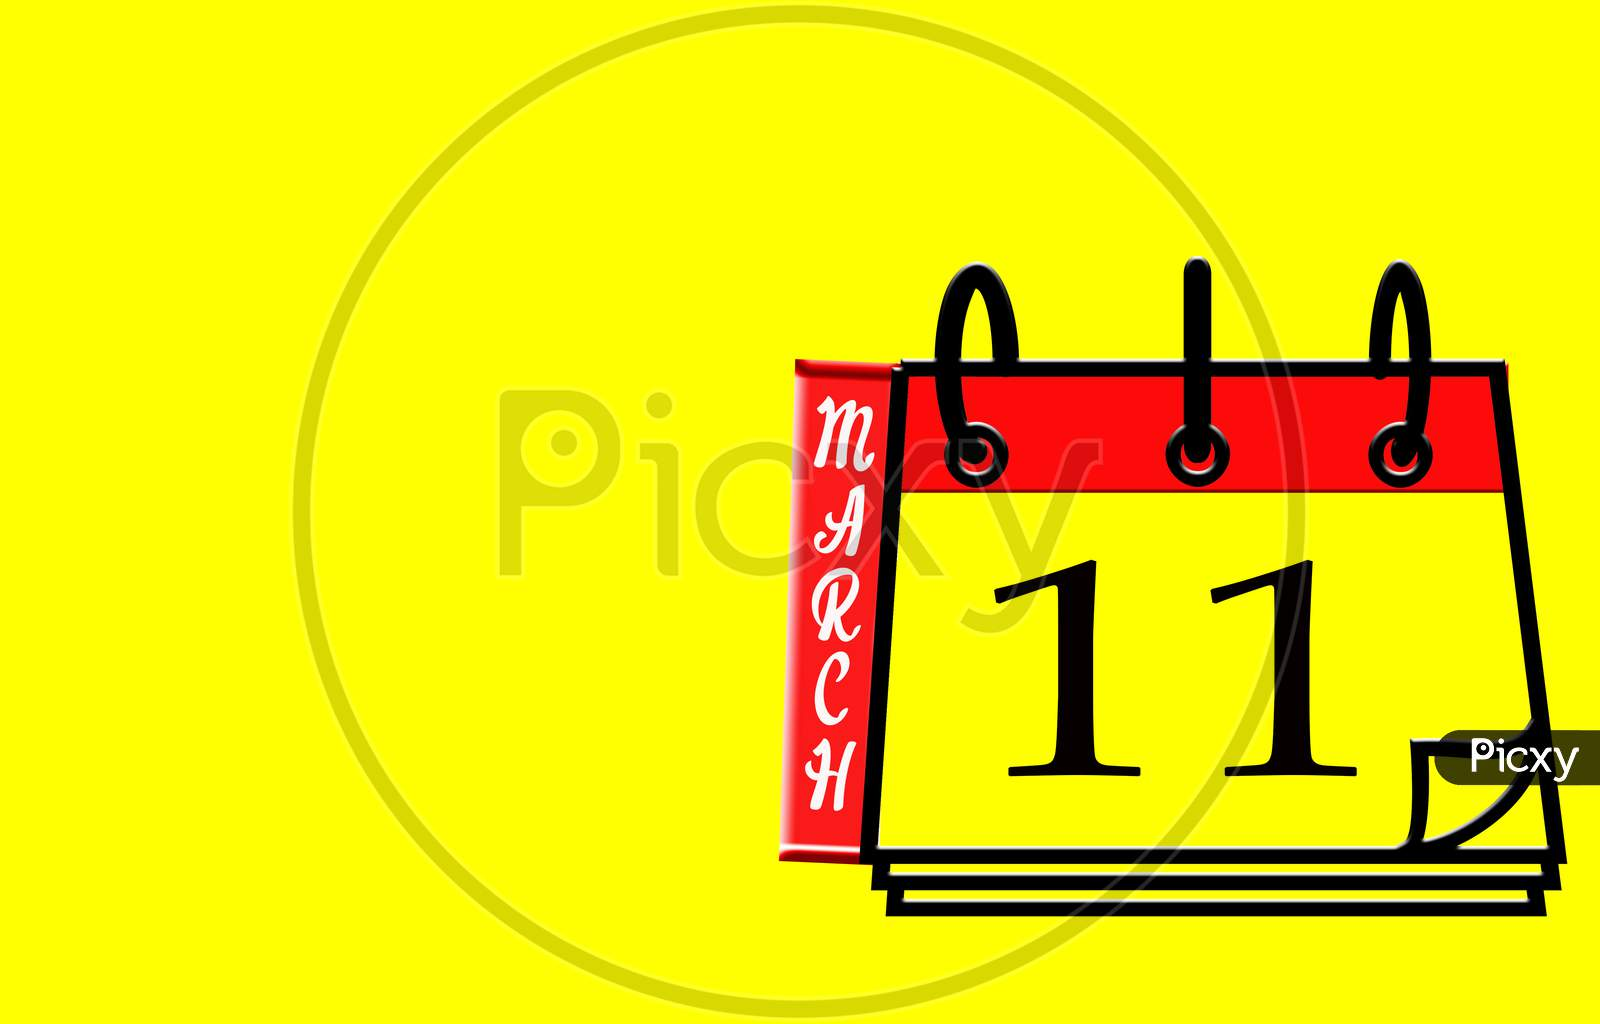 March 11, Calendar On Yellow Background